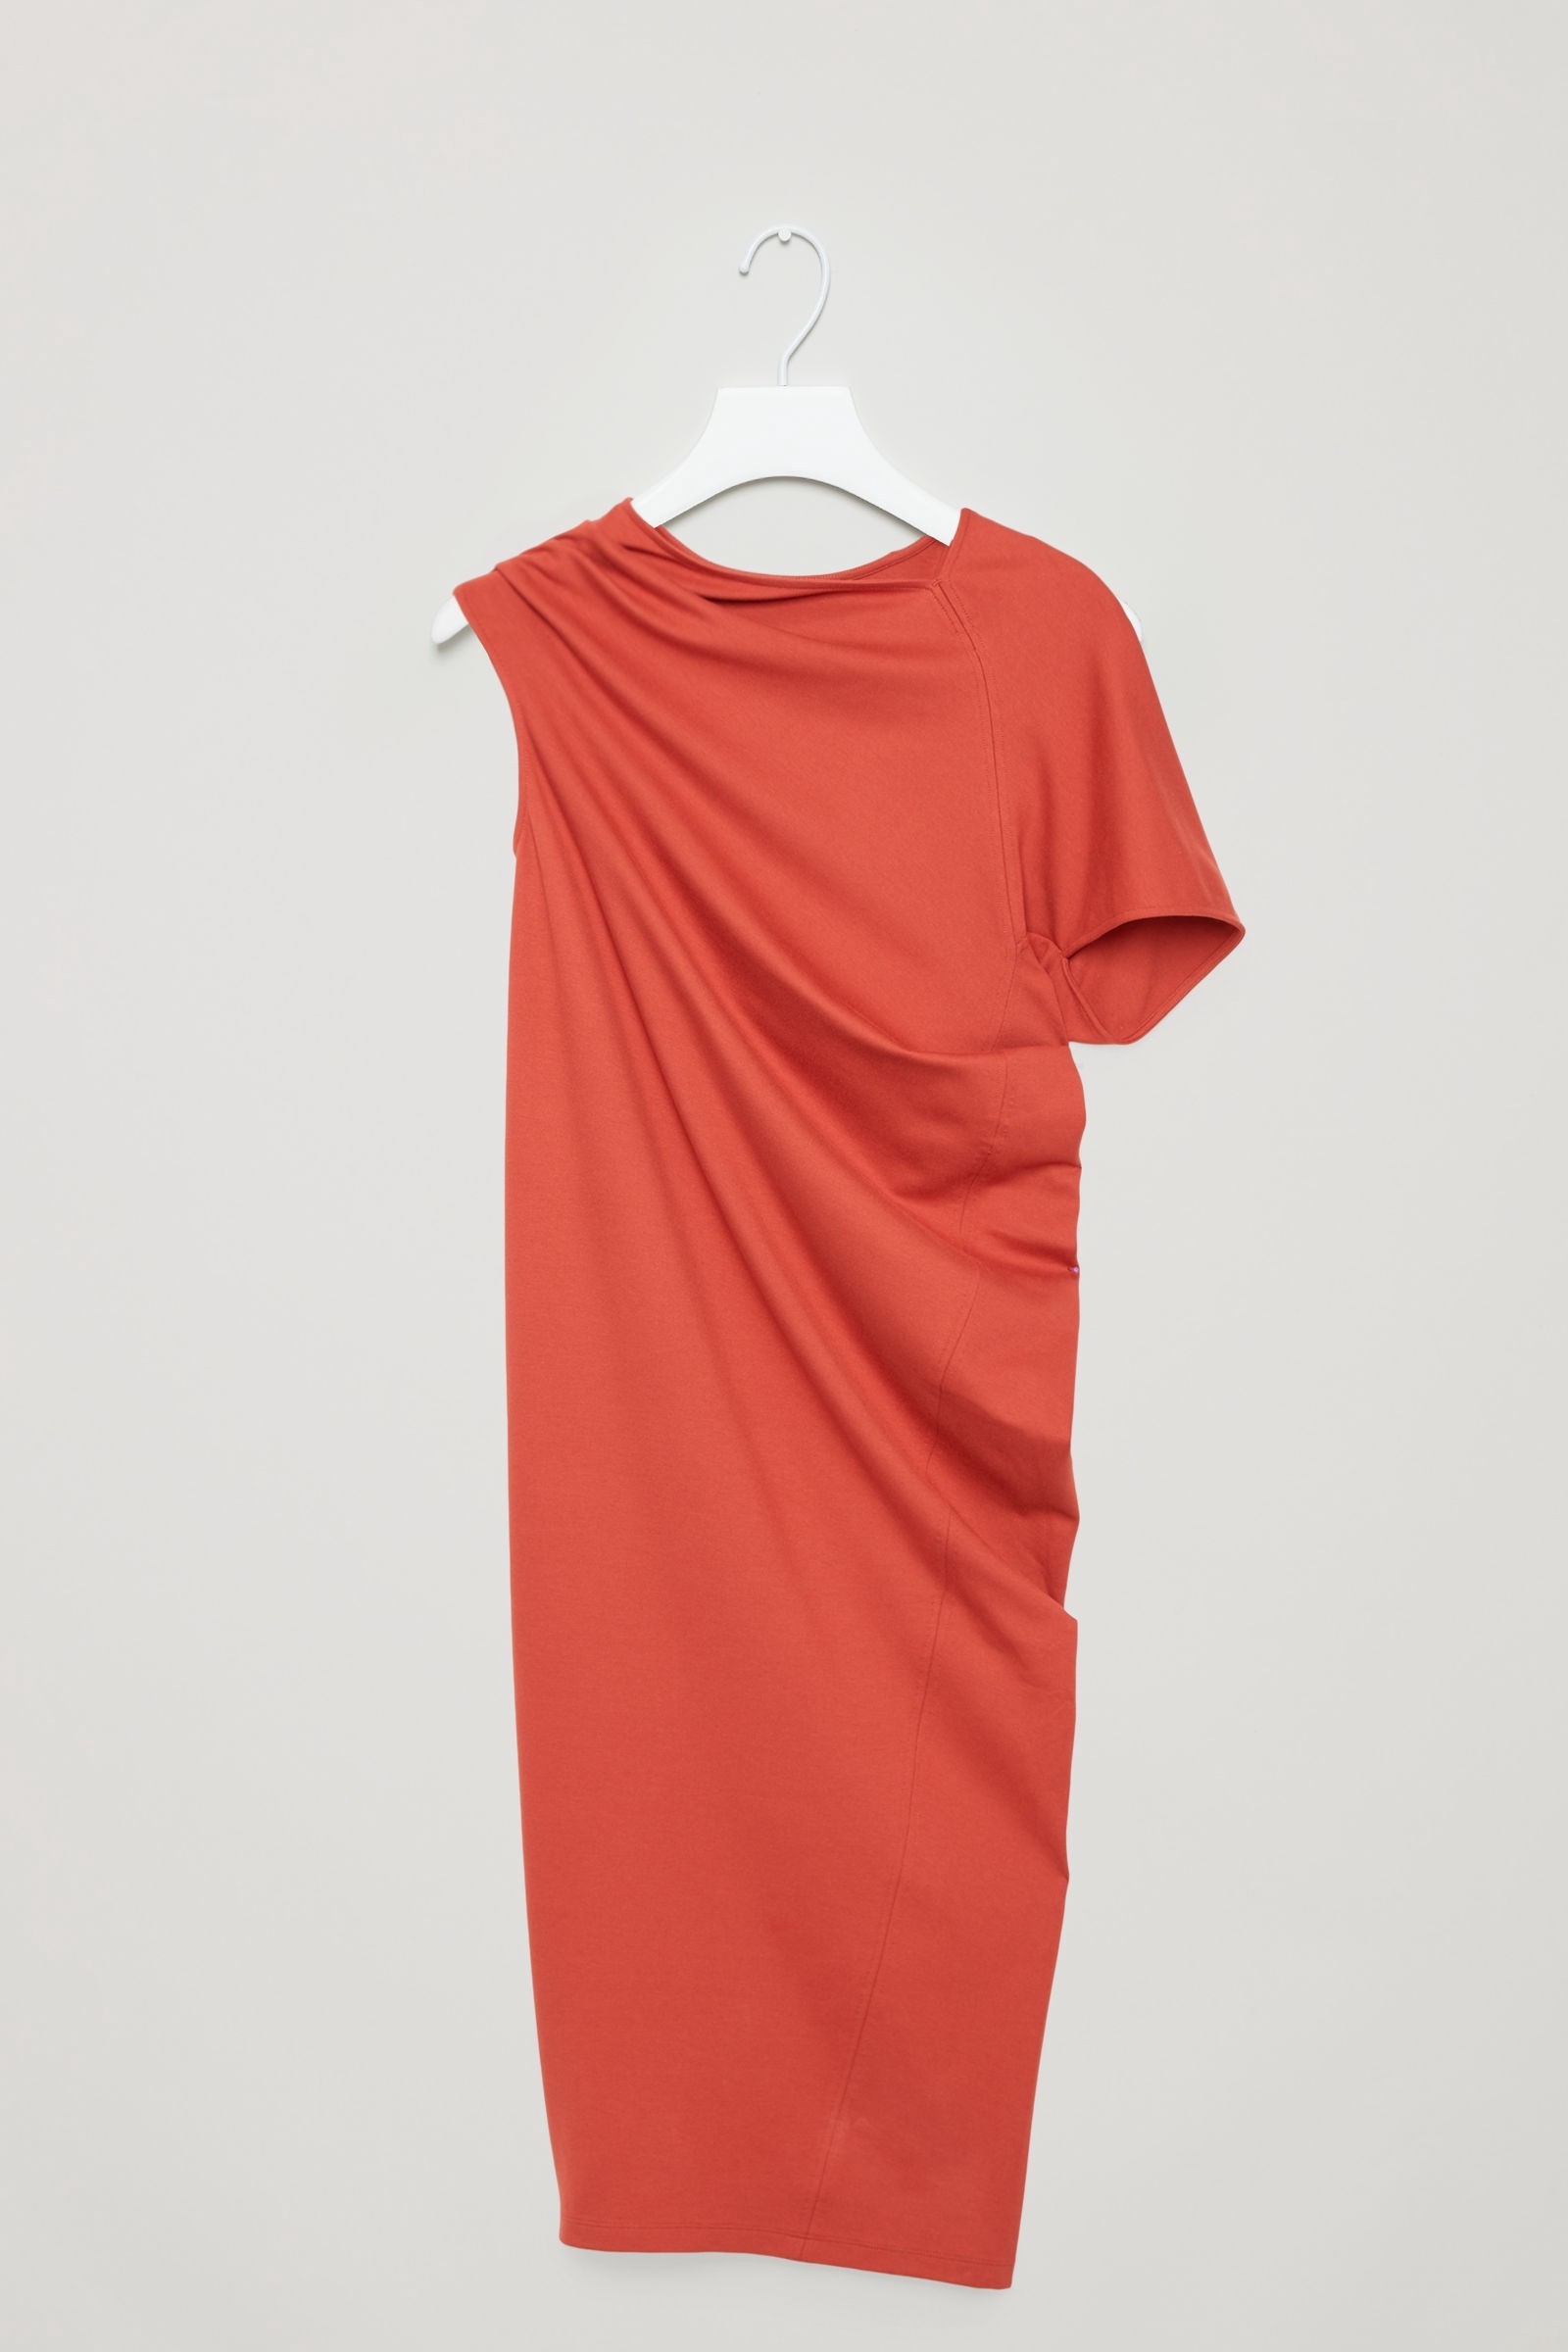 93614423dee4 Cos Asymmetric Draped Dress - Rust XS | Products